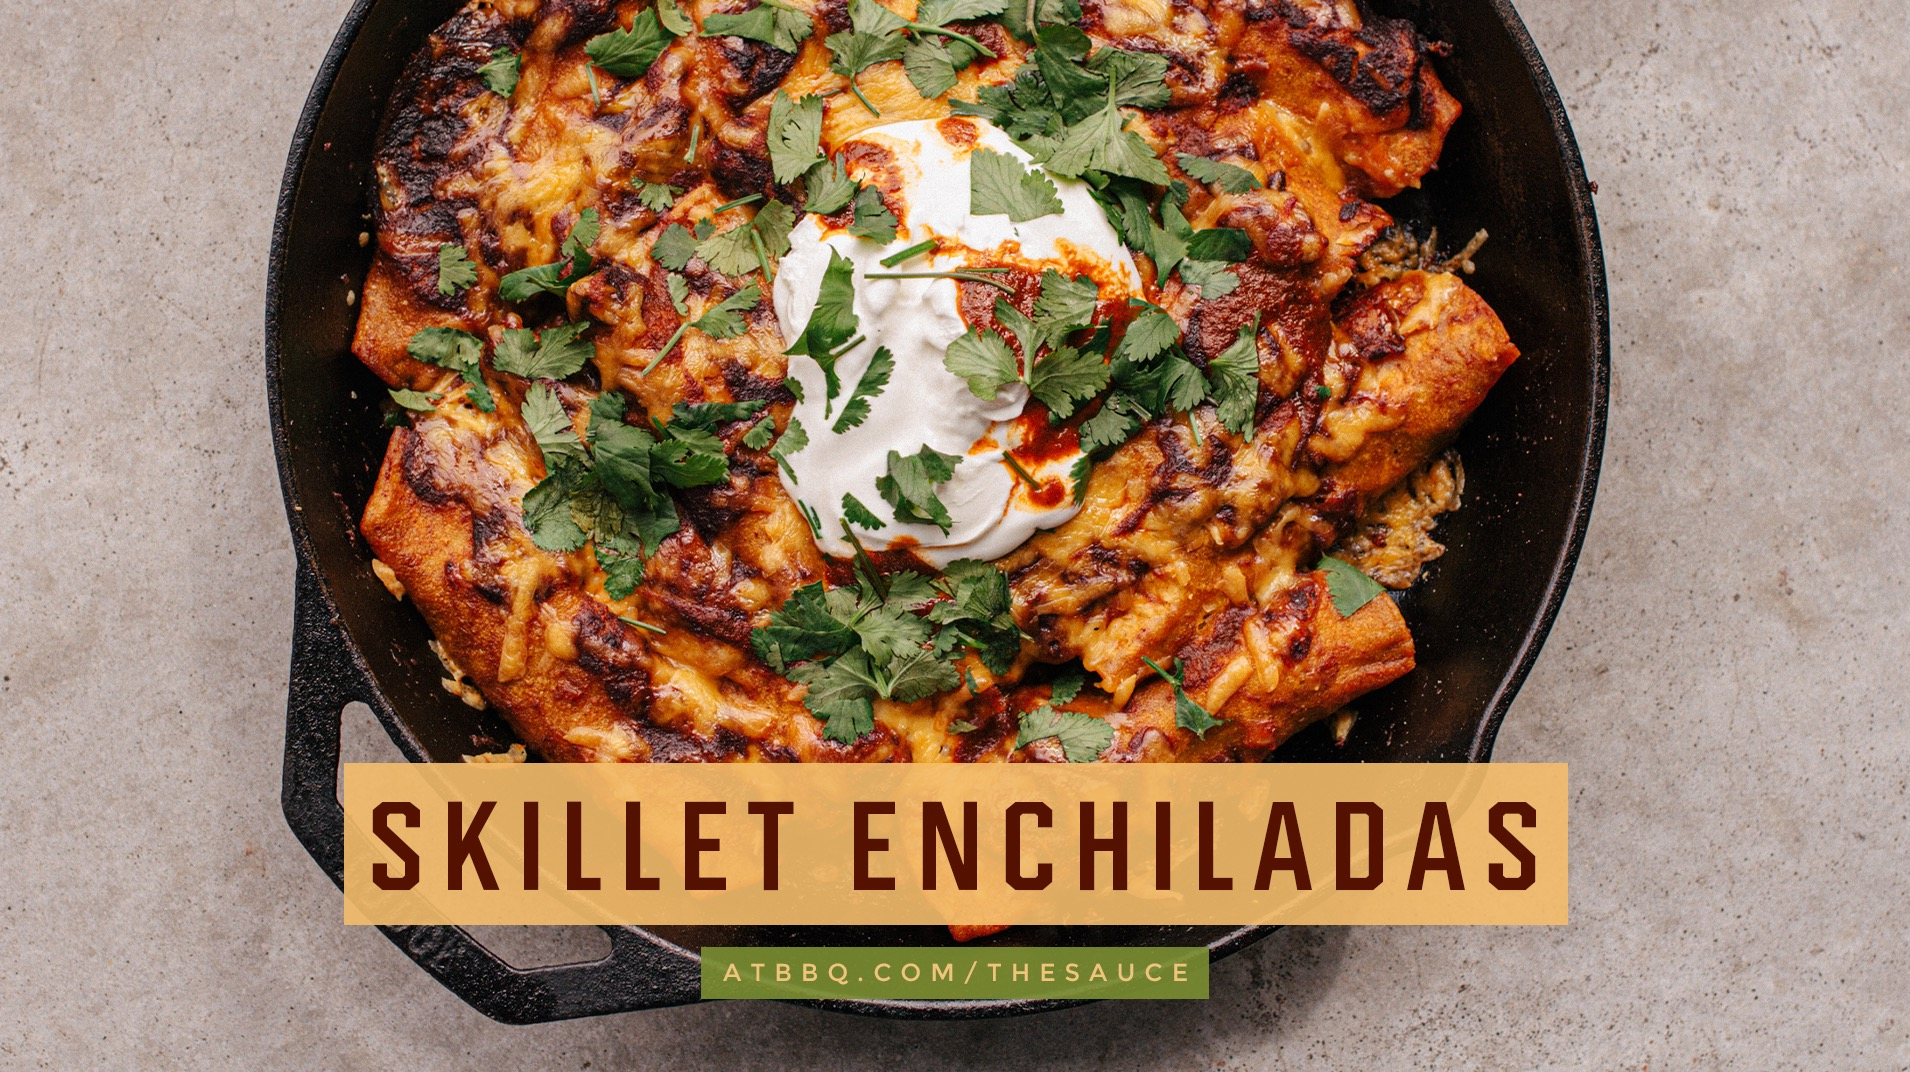 Red Chili Skillet Enchiladas